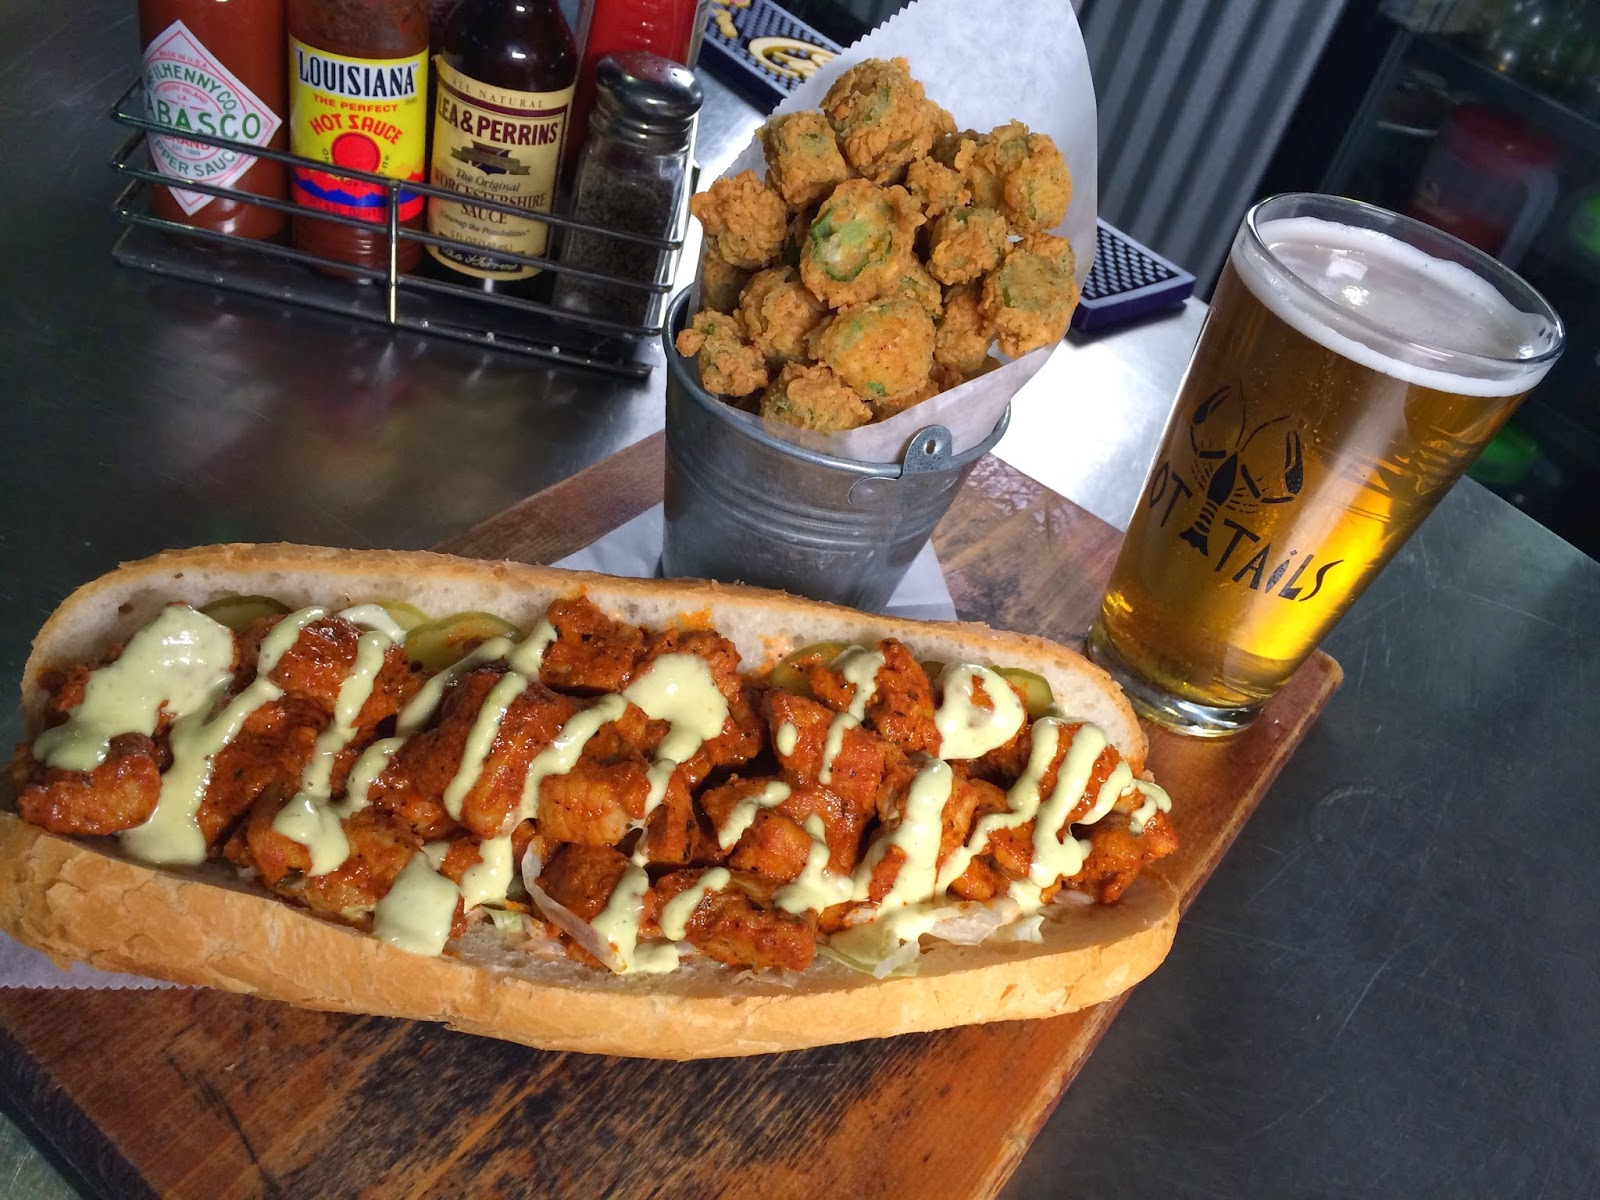 Blackened Alligator Po-Boy with Fried Okra and a pint of Tin Roof Blonde